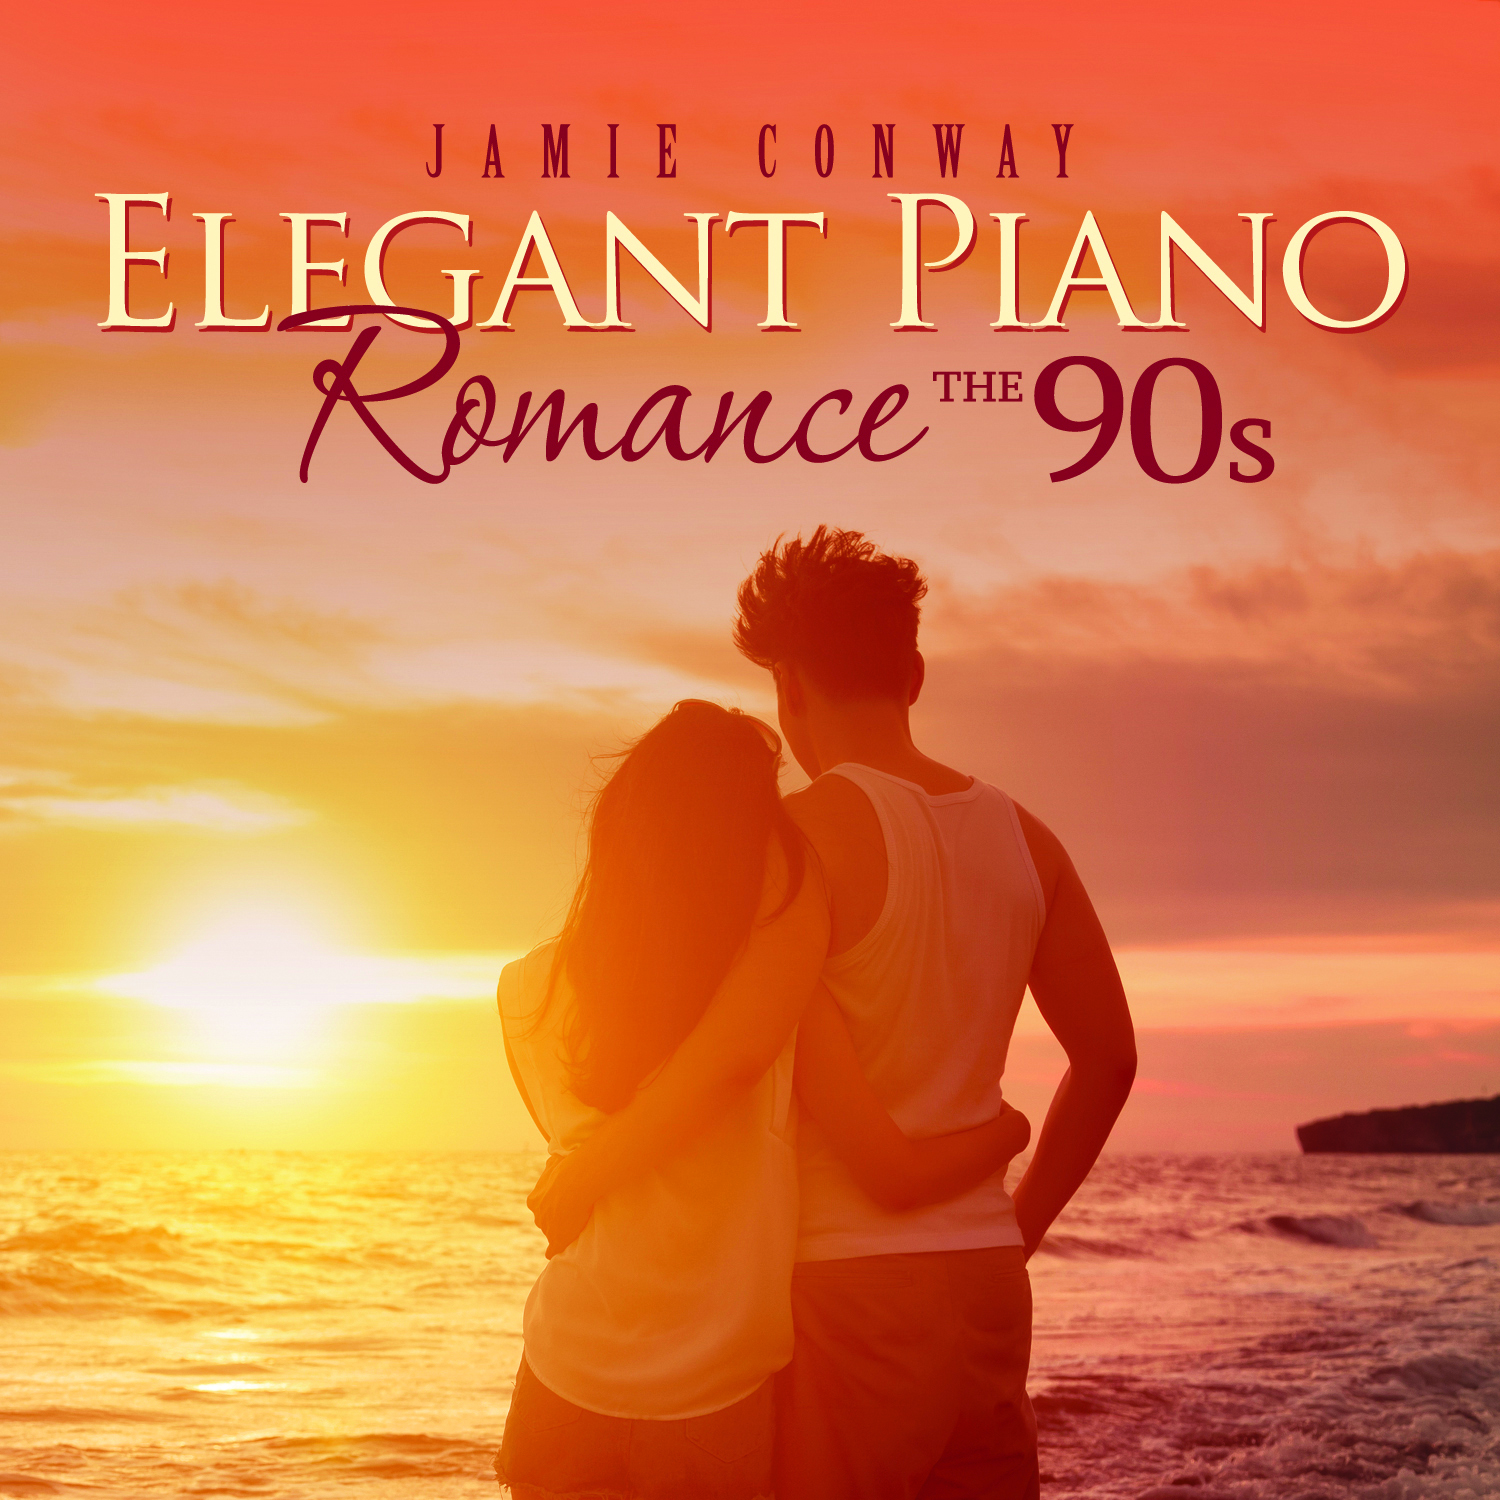 ELEGANT PIANO ROMANCE: THE 90S